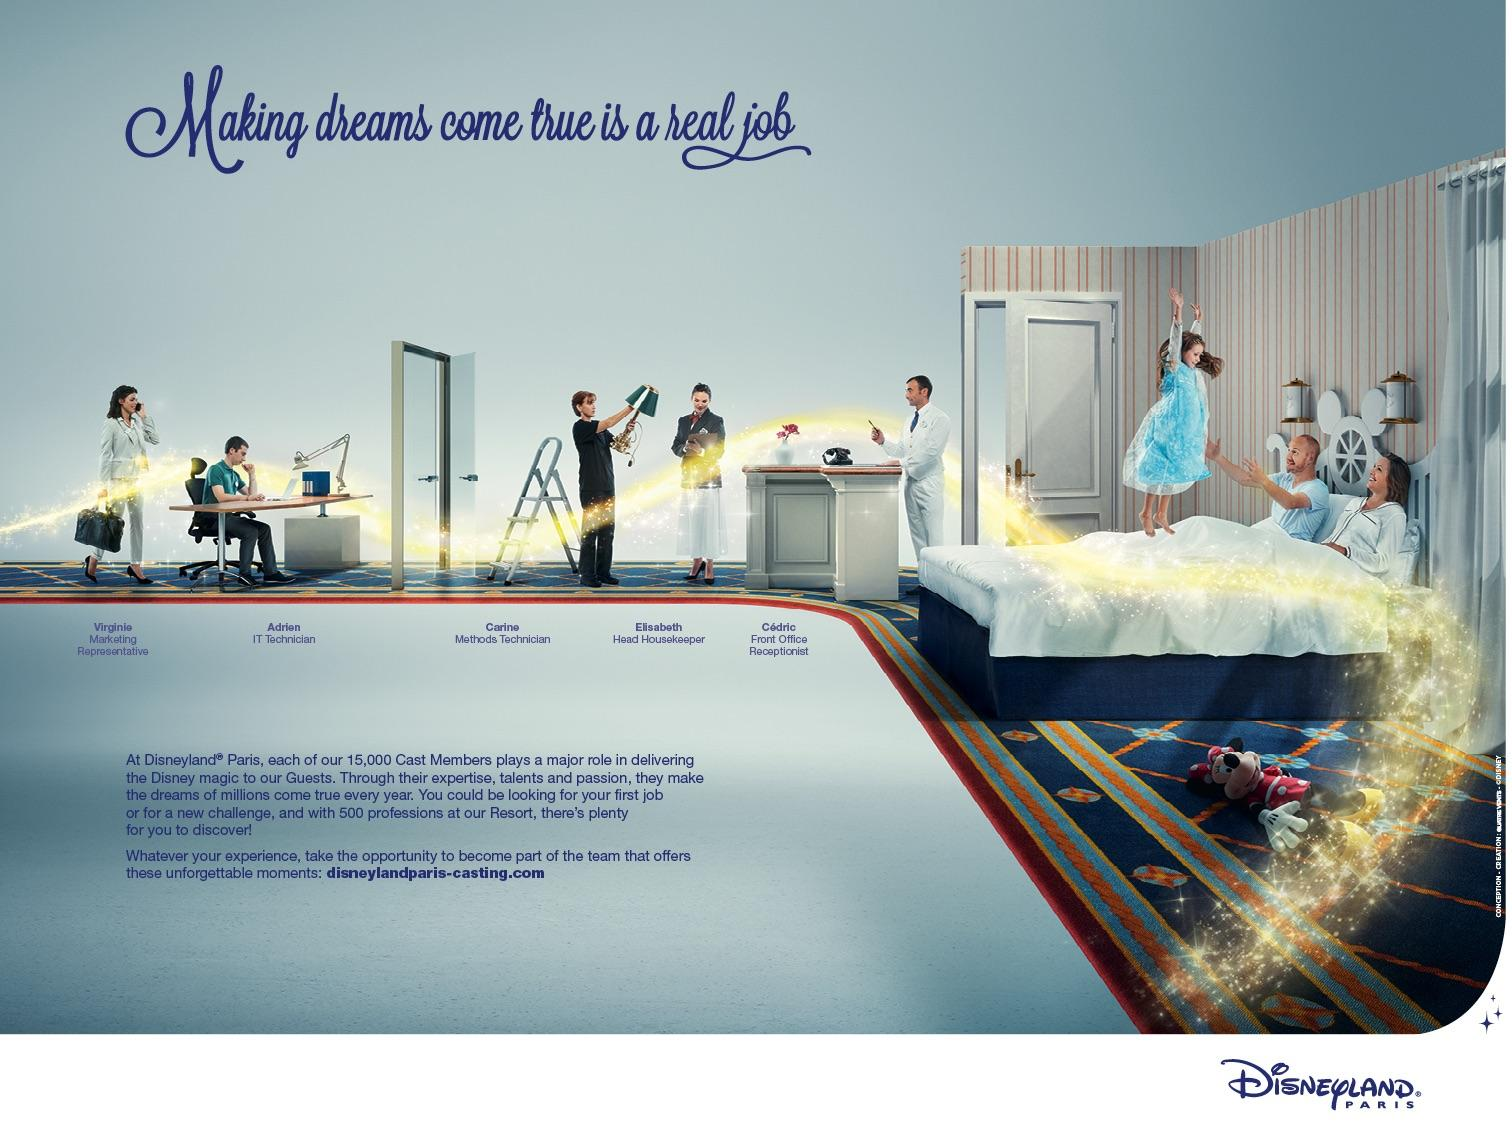 Disneyland Print Advert By Quatre Vents: Real job, 2 | Ads of the World™